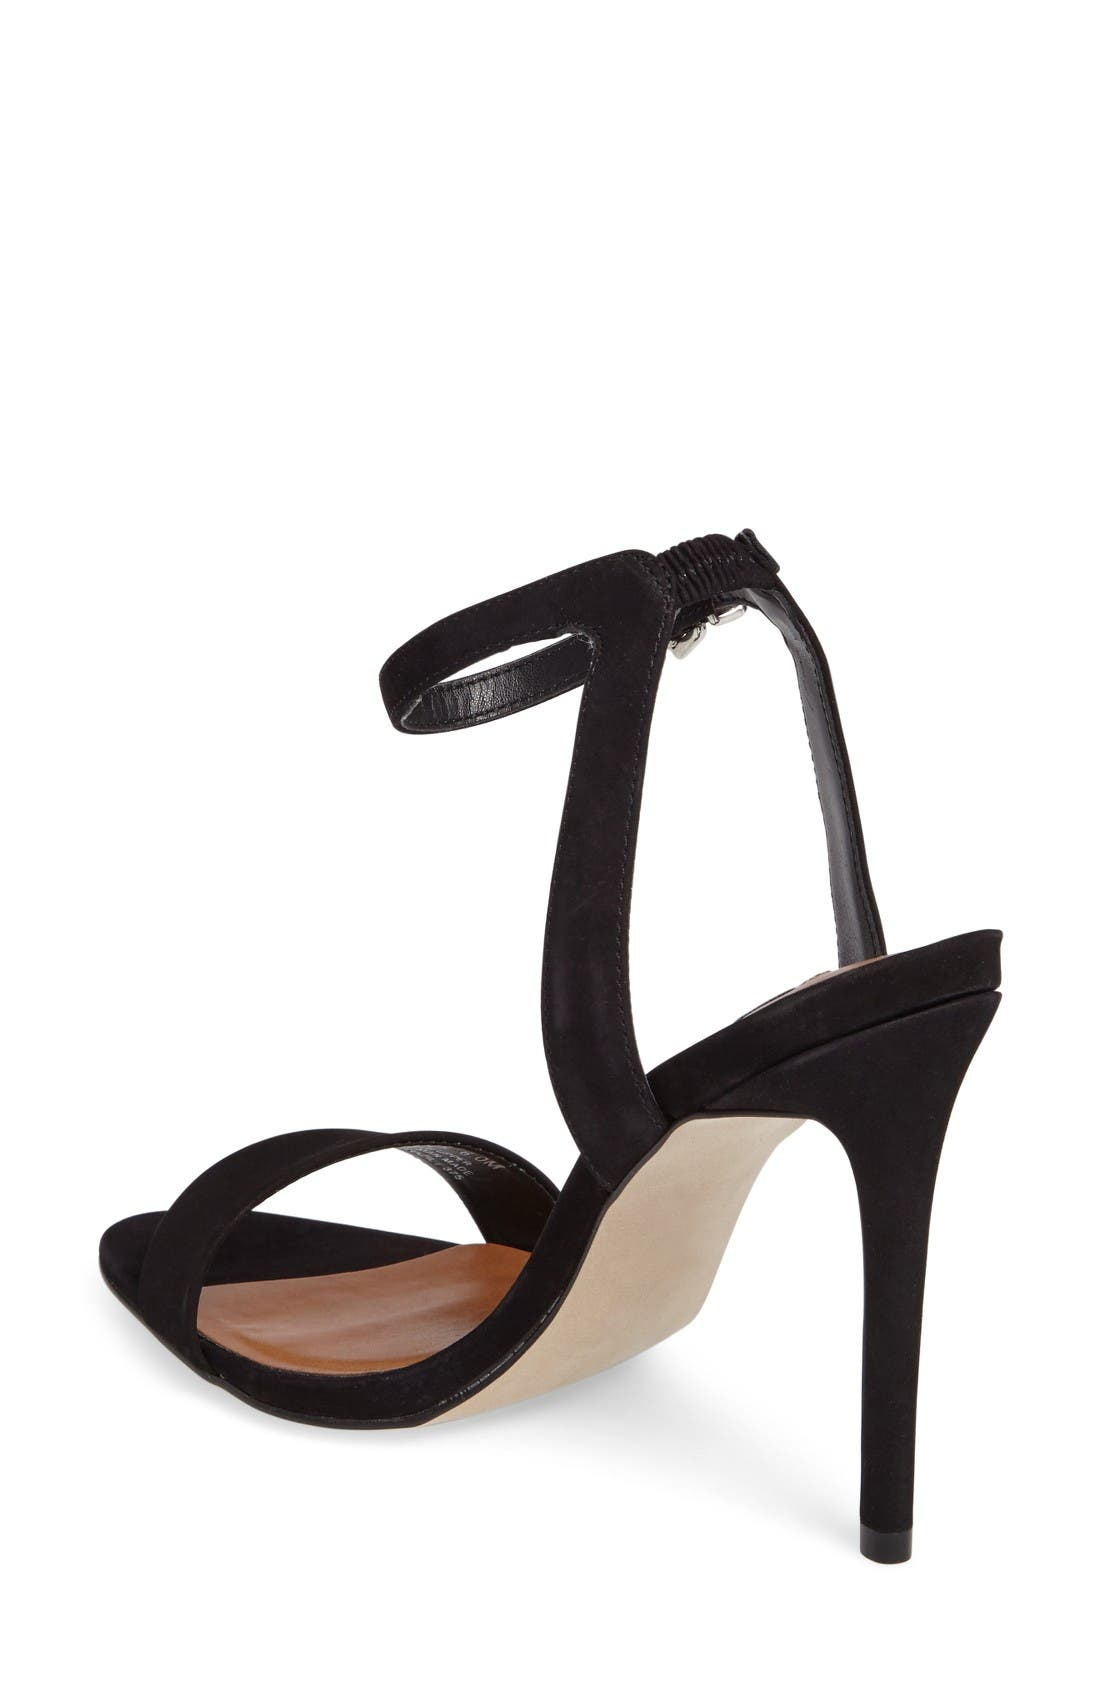 Landen Ankle Strap Sandal,                             Alternate thumbnail 2, color,                             Black Nubuck Leather